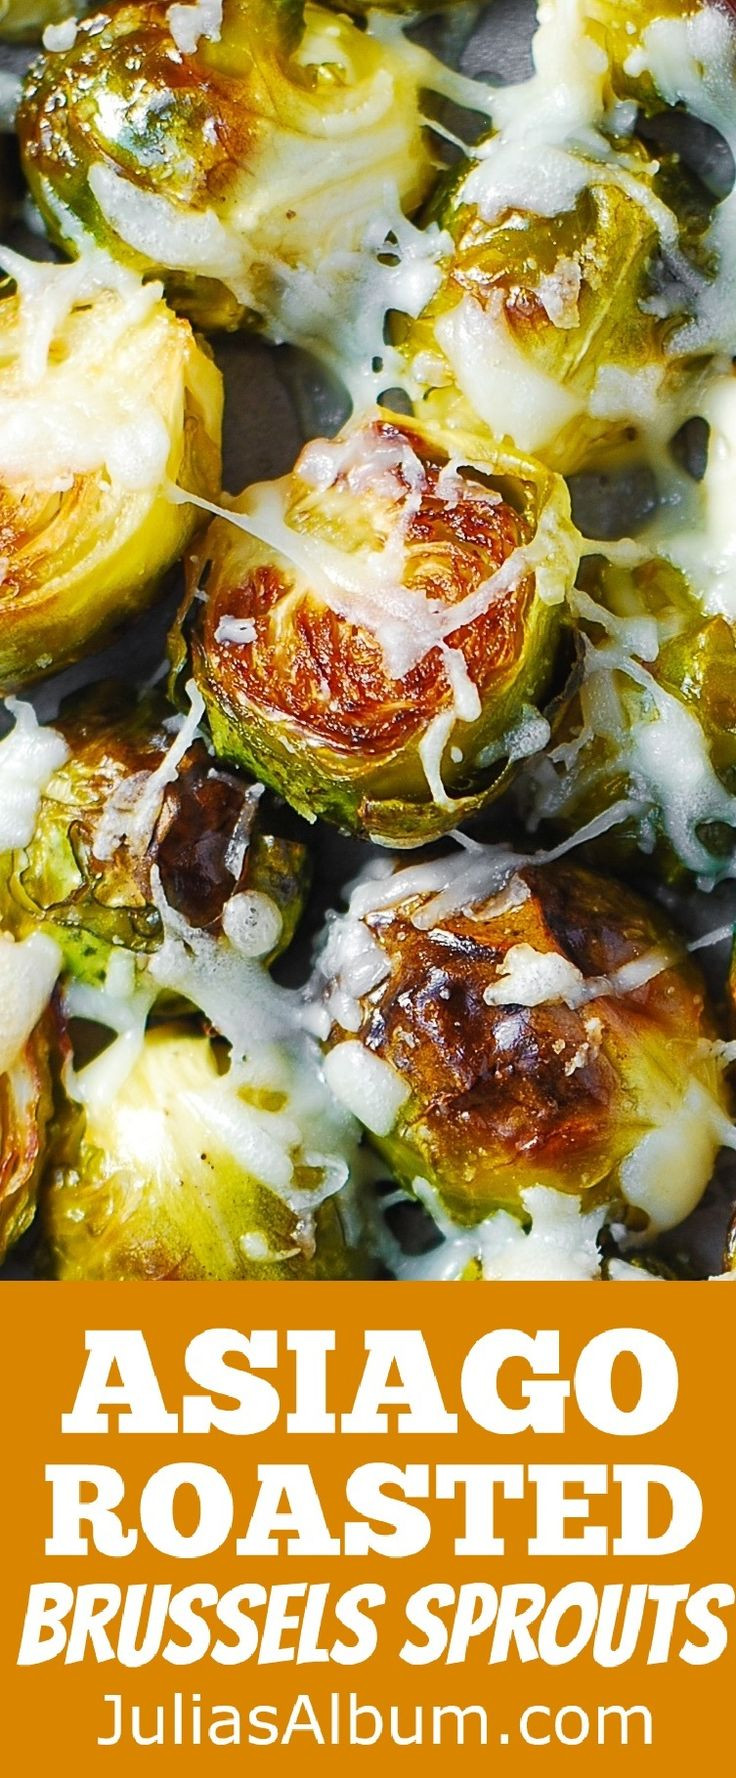 Healthy Side Dishes For Hamburgers  Best 25 Hamburger side dishes ideas on Pinterest